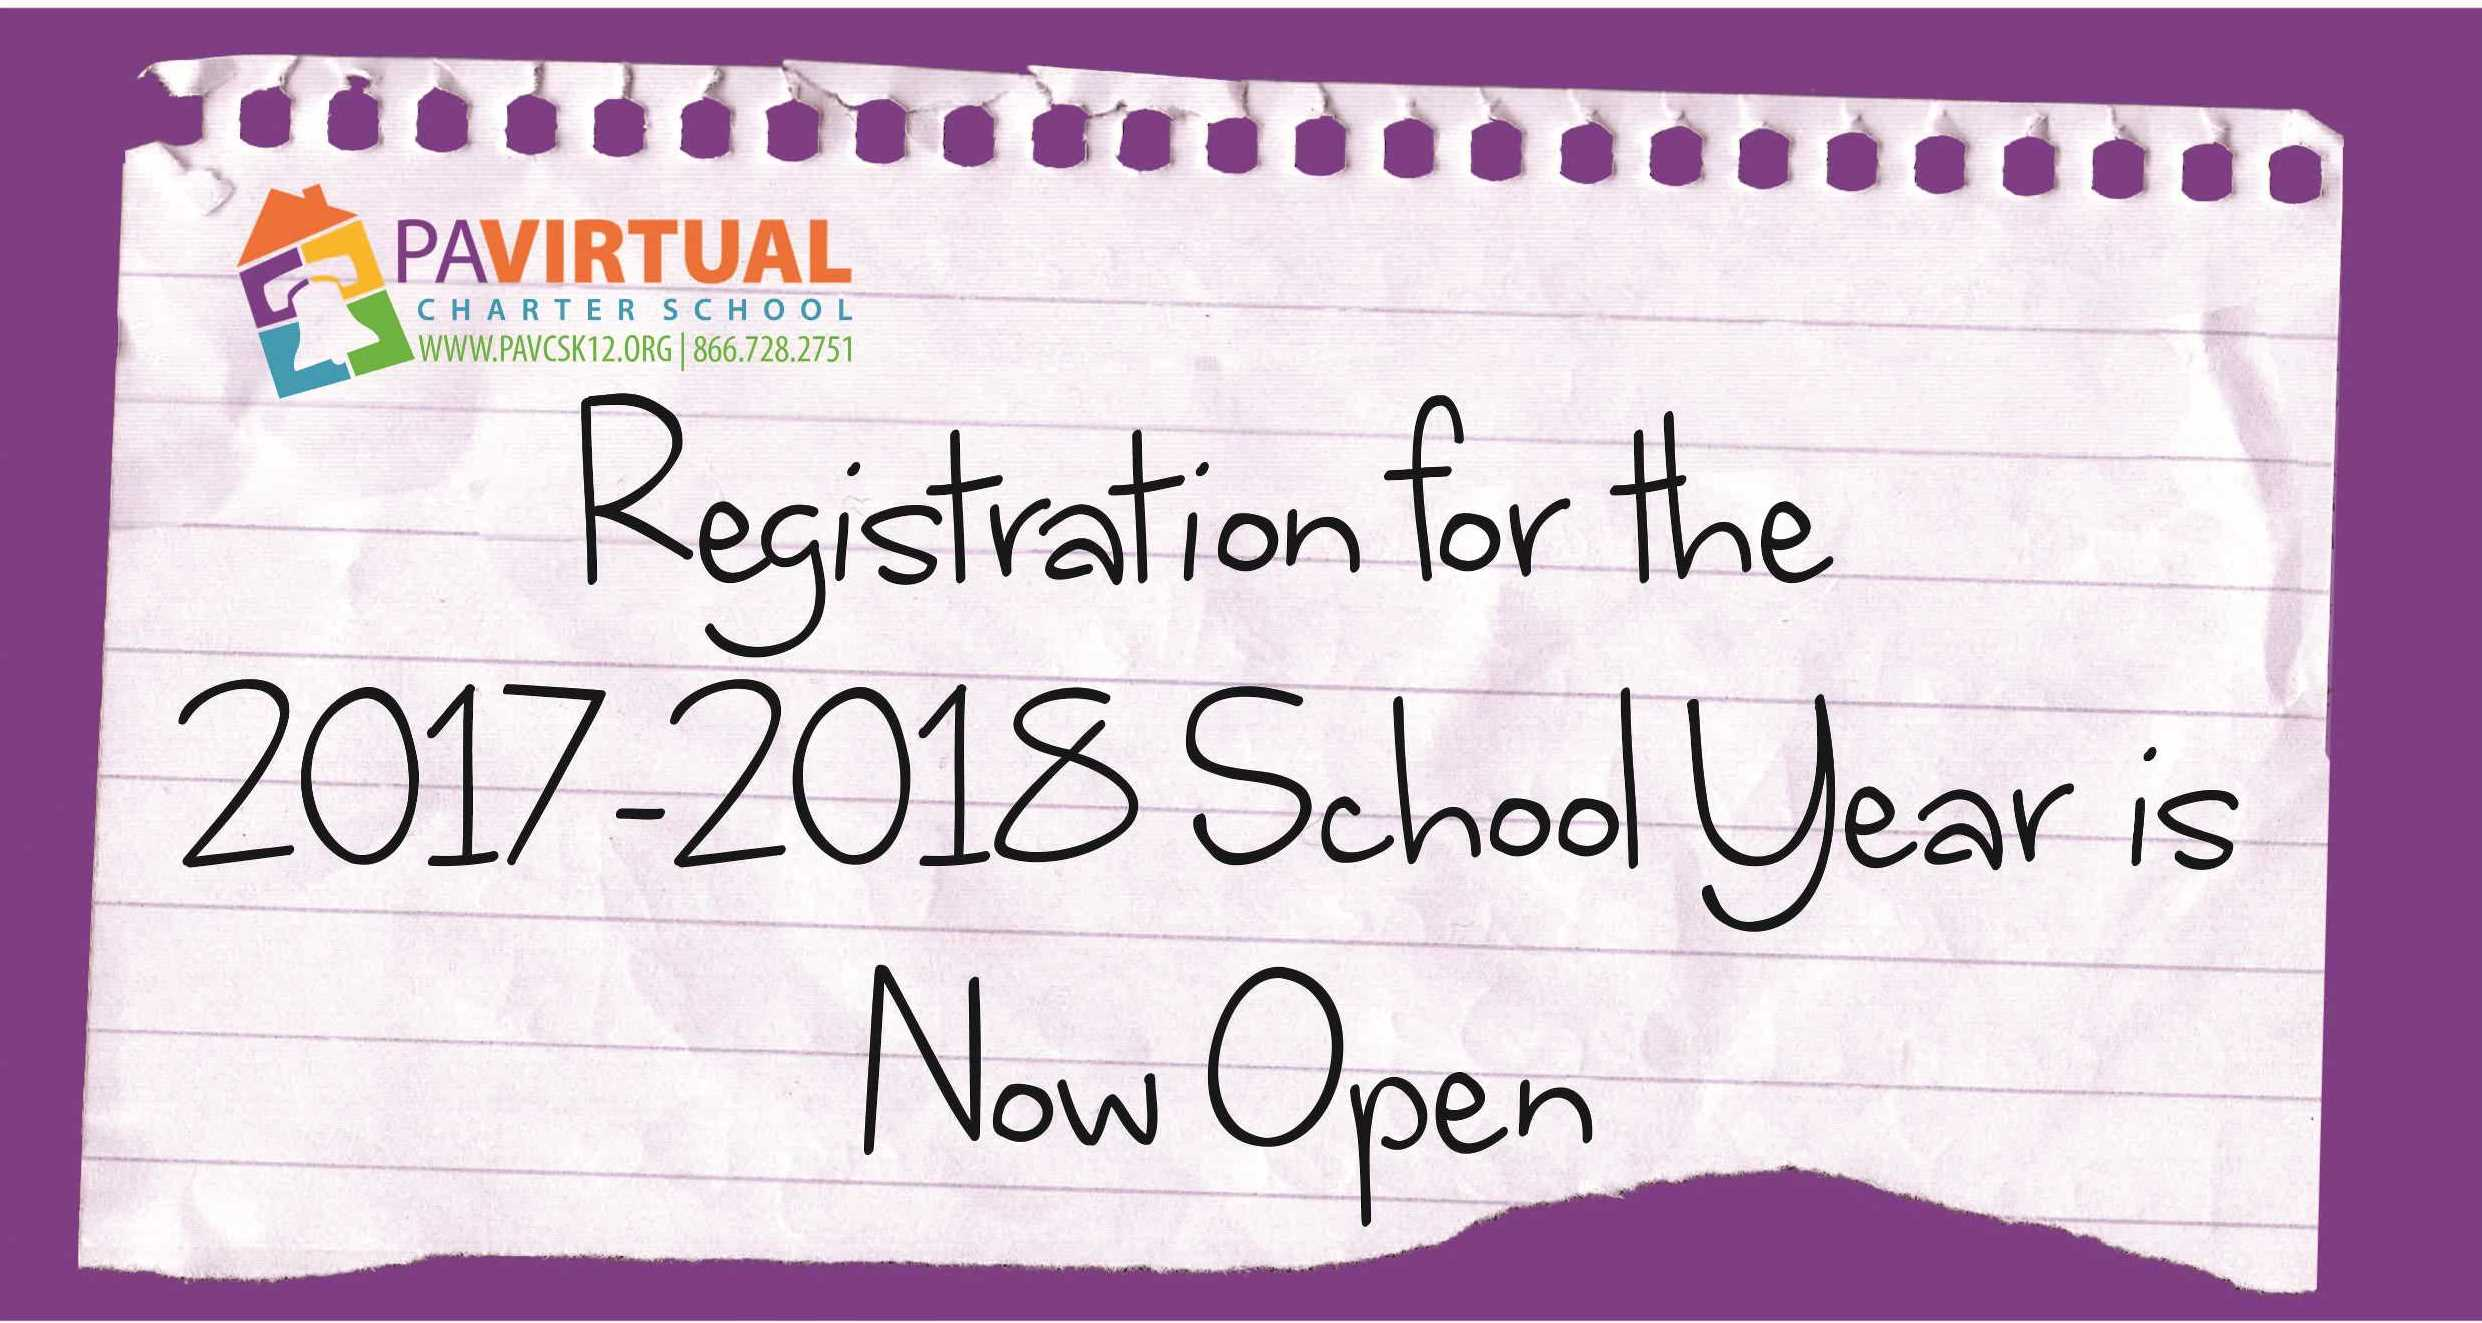 Registration for the 2017-2018 SY is Now Open!